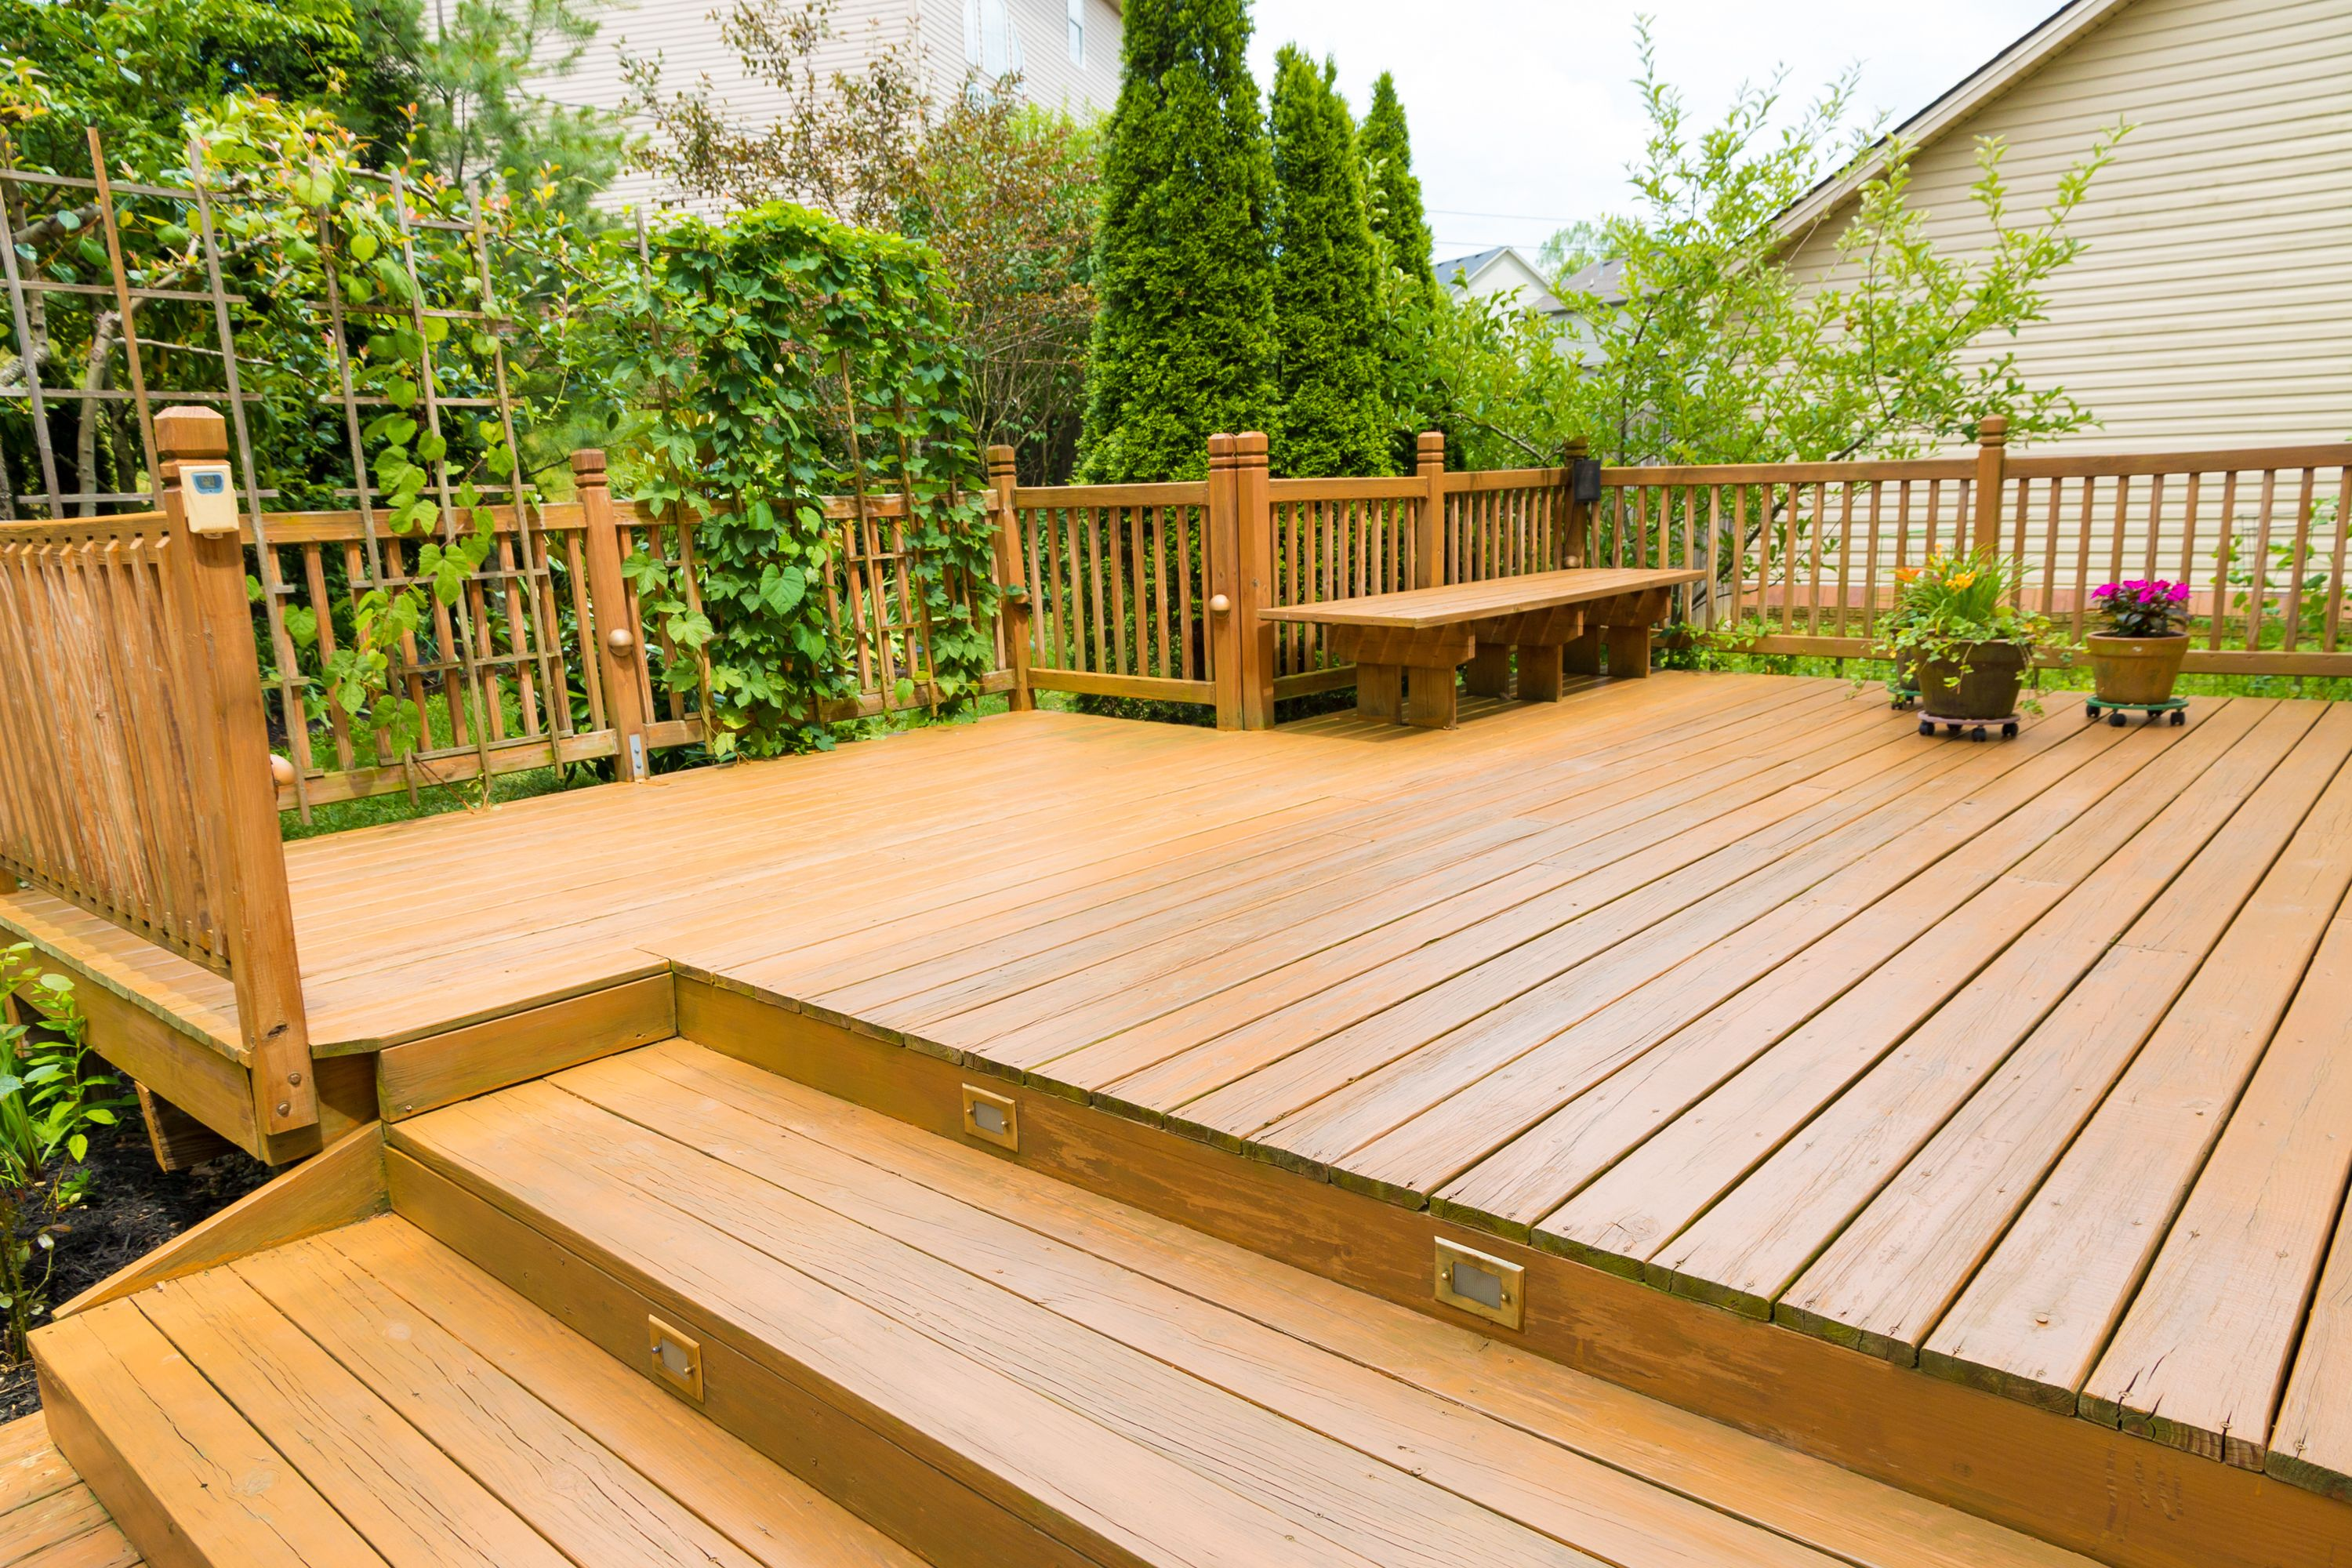 How To Clean Mold And Mildew From Wood Decks Ideas For The House